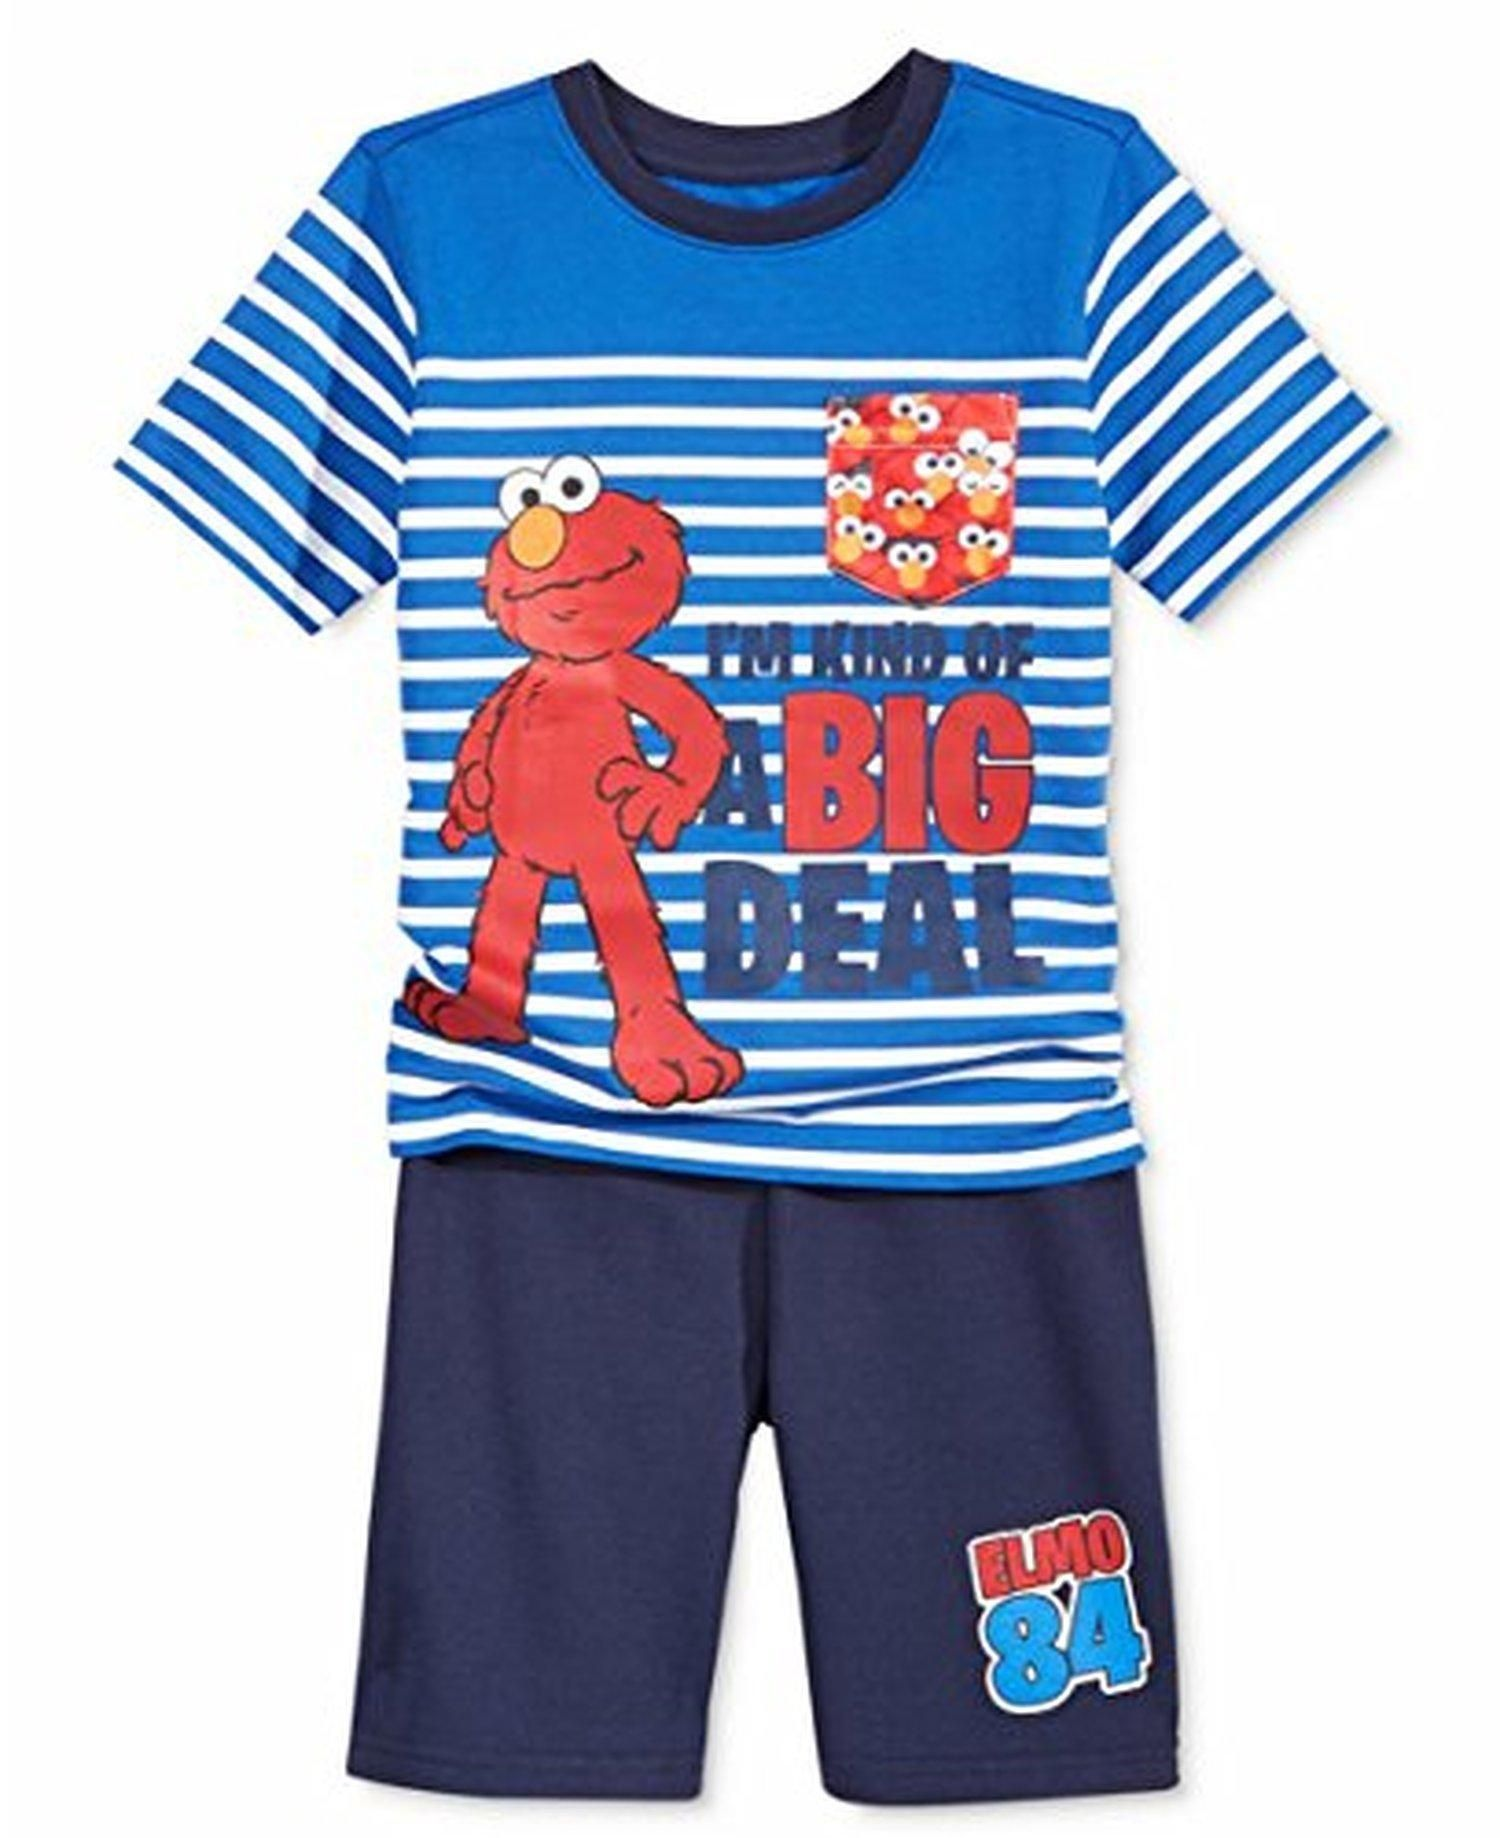 a8bf7dbd66 Sesame Street Elmo Infant Baby-Boys 2 Piece Set Pocket Shirt & Shorts (12  months ) - Brought to you by Avarsha.com